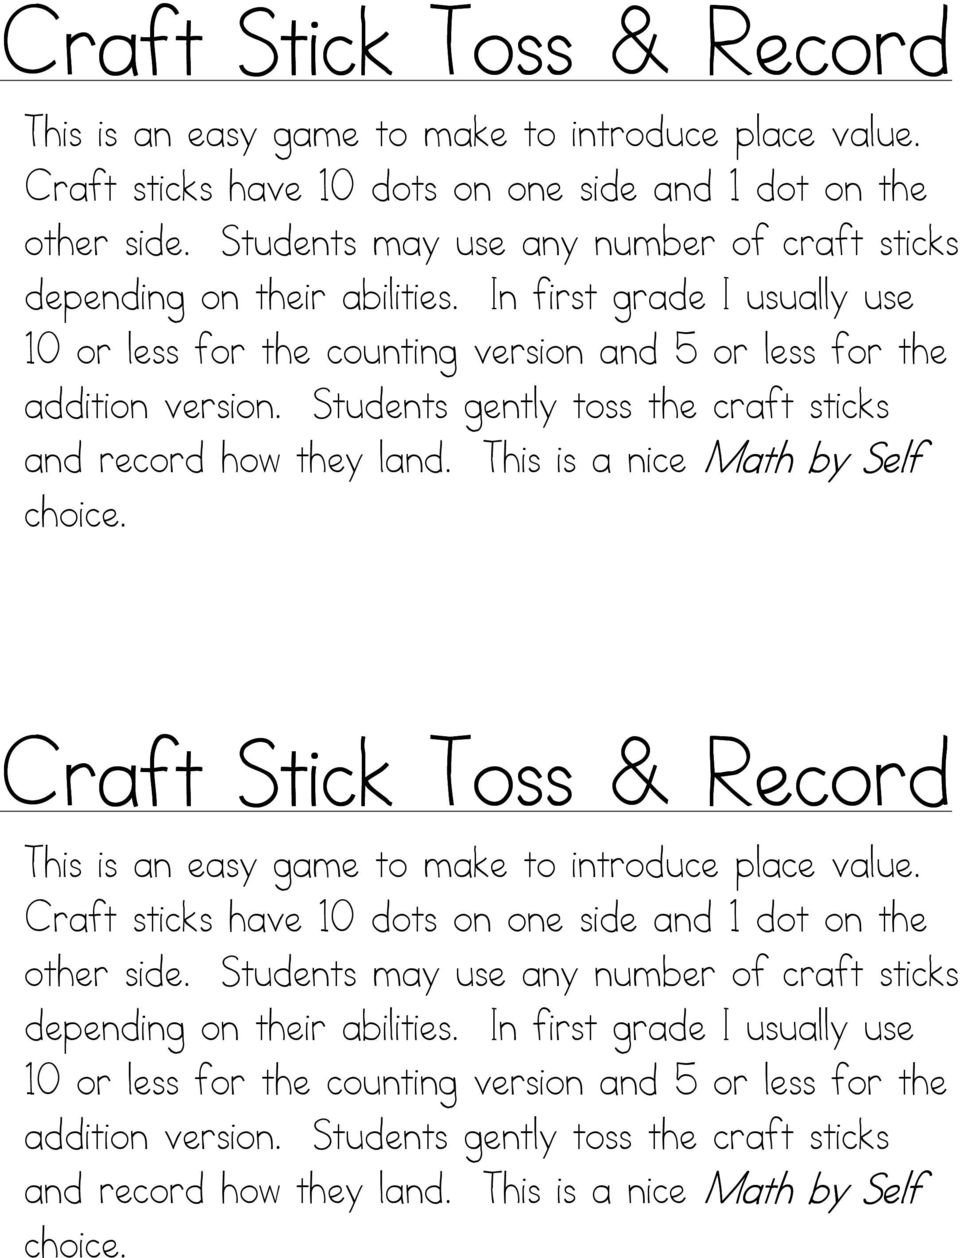 Students gently toss the craft sticks and record how they land. This is a nice Math by Self choice.   Students gently toss the craft sticks and record how they land.